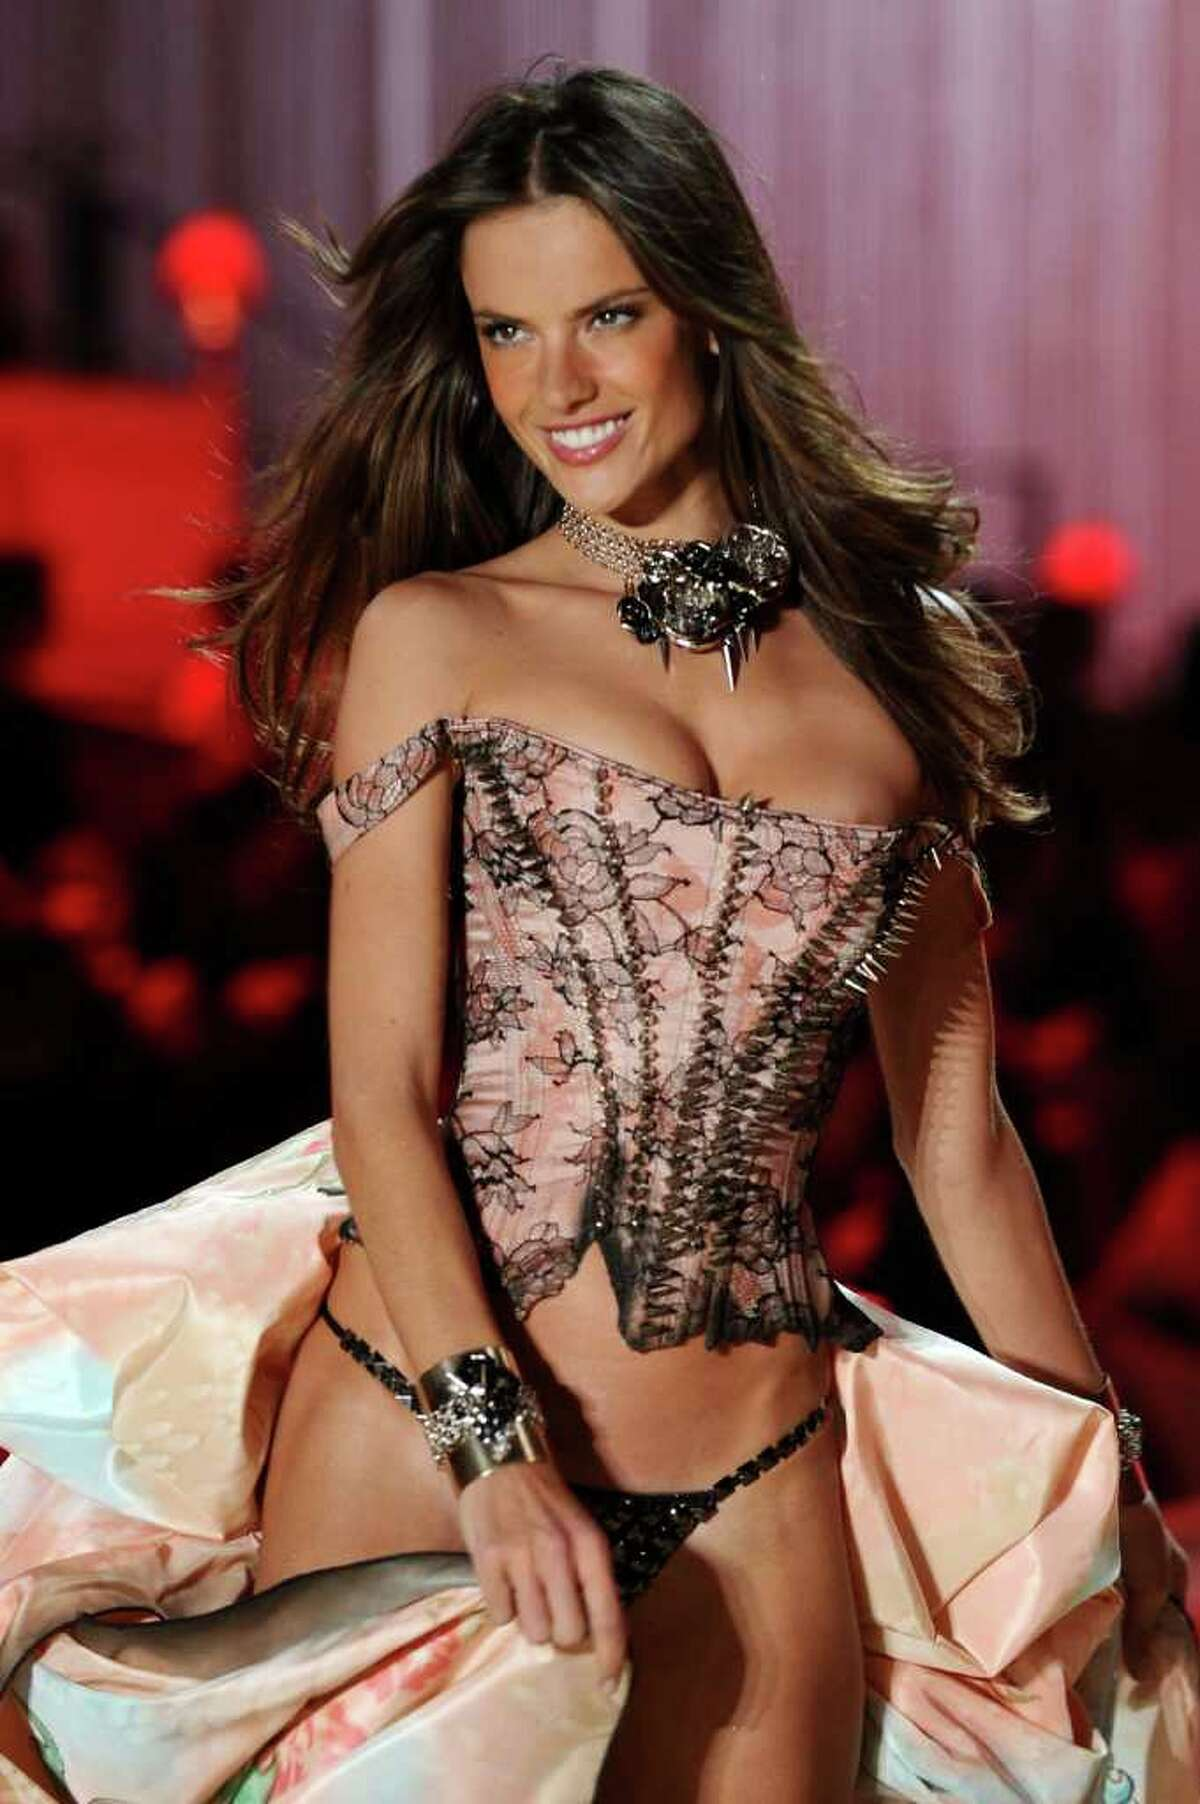 NEW YORK - NOVEMBER 10: Model Alessandra Ambrosio walks the runway during the 2010 Victoria's Secret Fashion Show at the Lexington Avenue Armory on November 10, 2010 in New York City. (Photo by Theo Wargo/Getty Images) *** Local Caption *** Alessandra Ambrosio